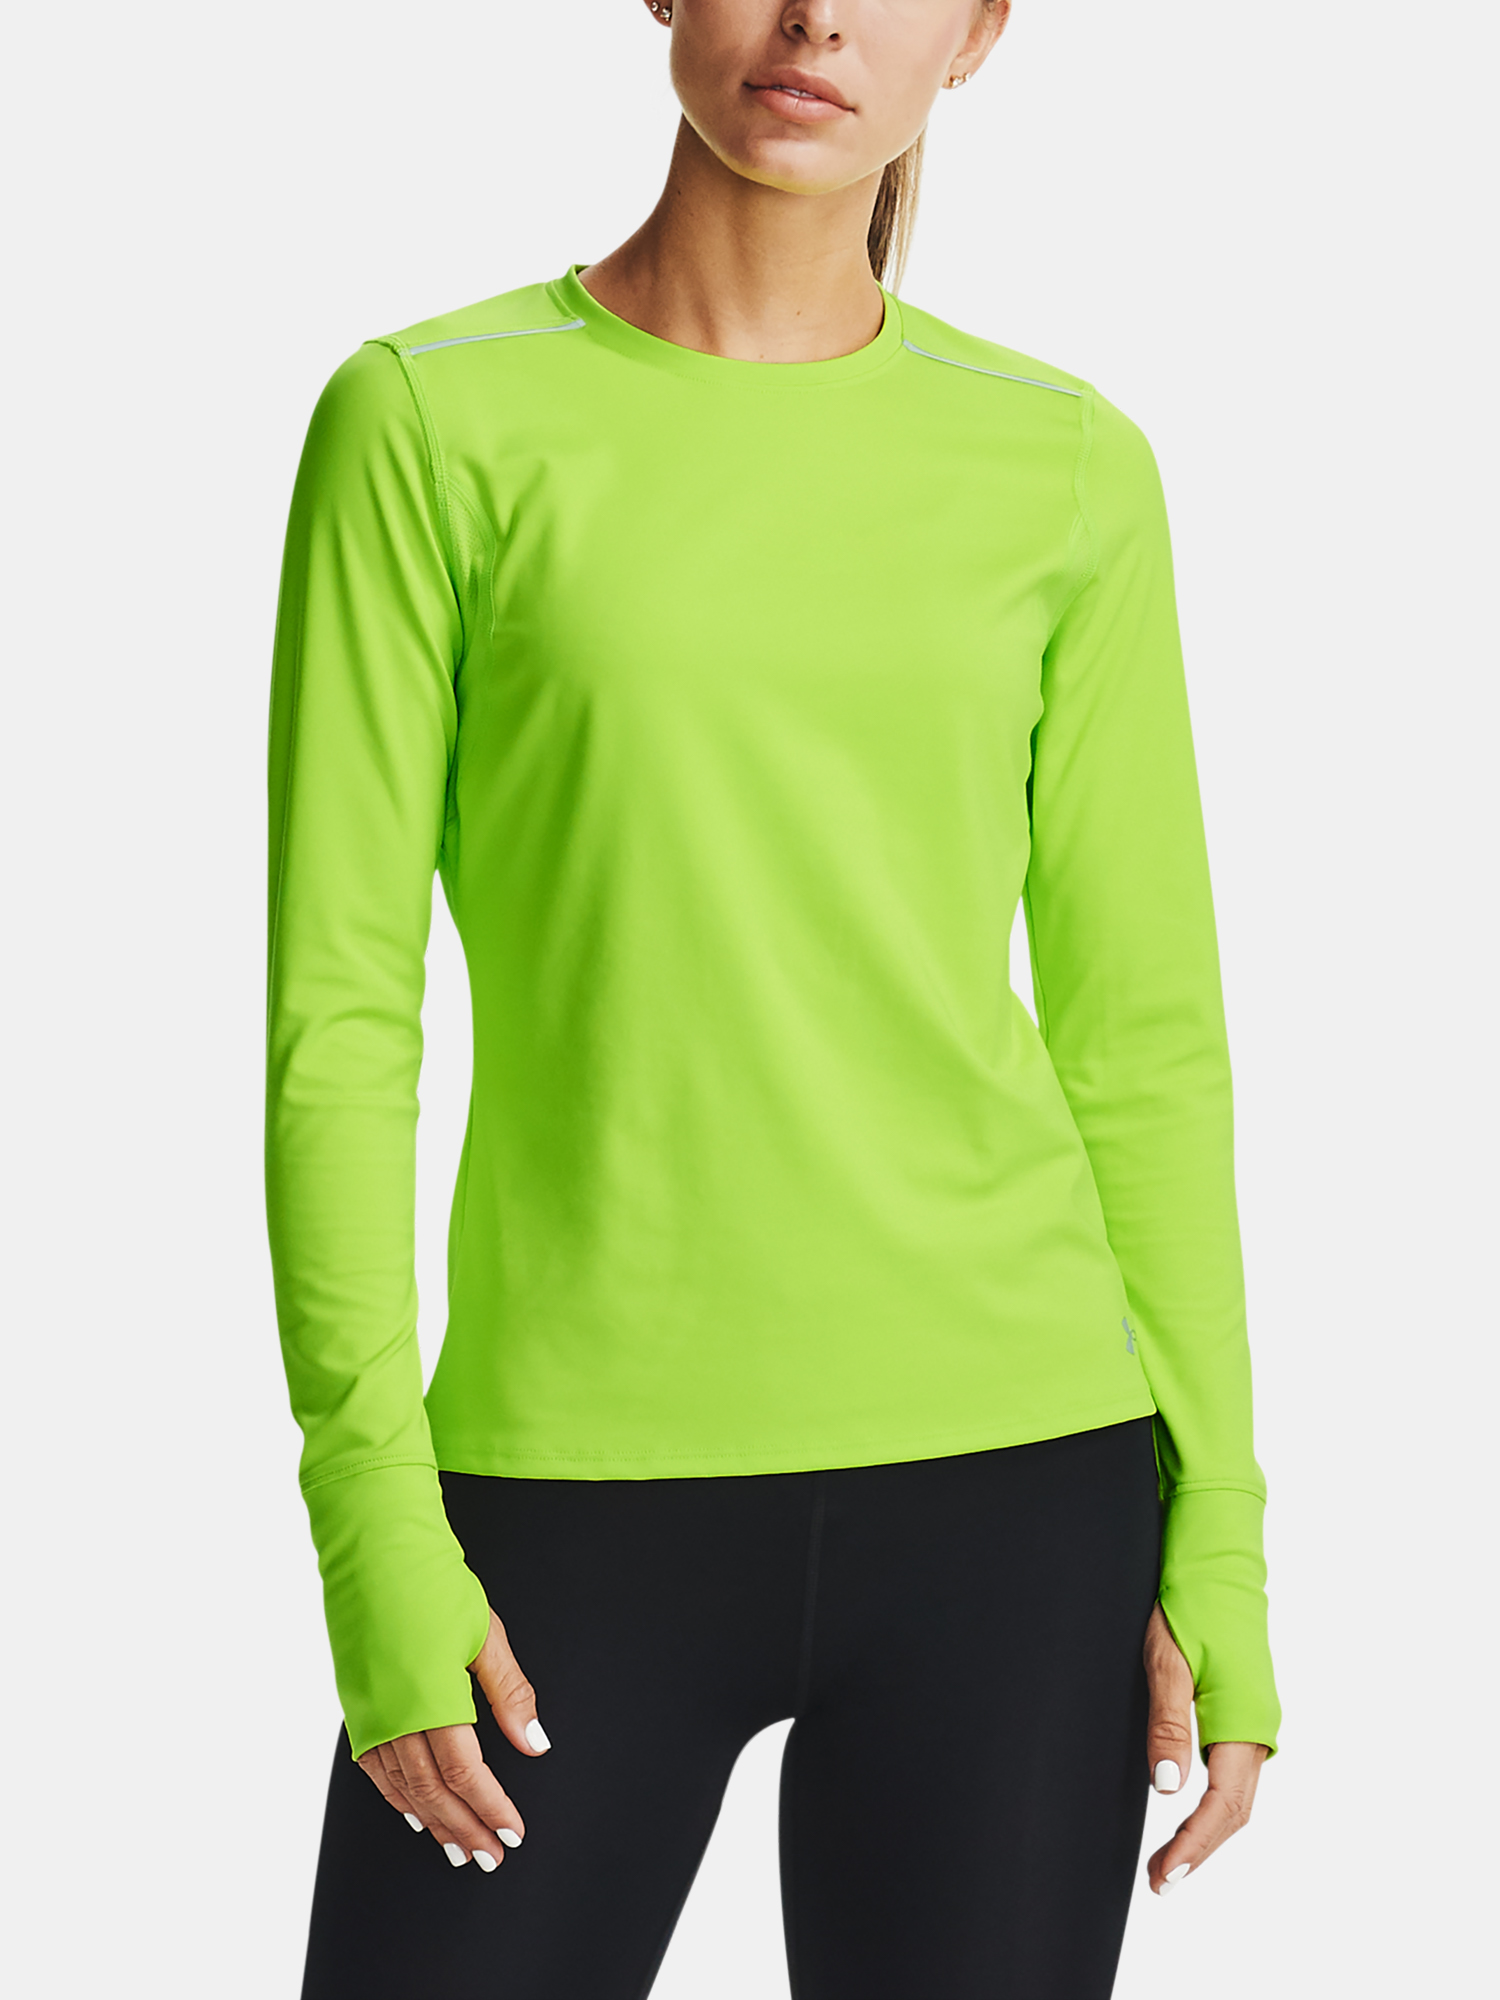 Tričko Under Armour Empowered LS Crew (1)